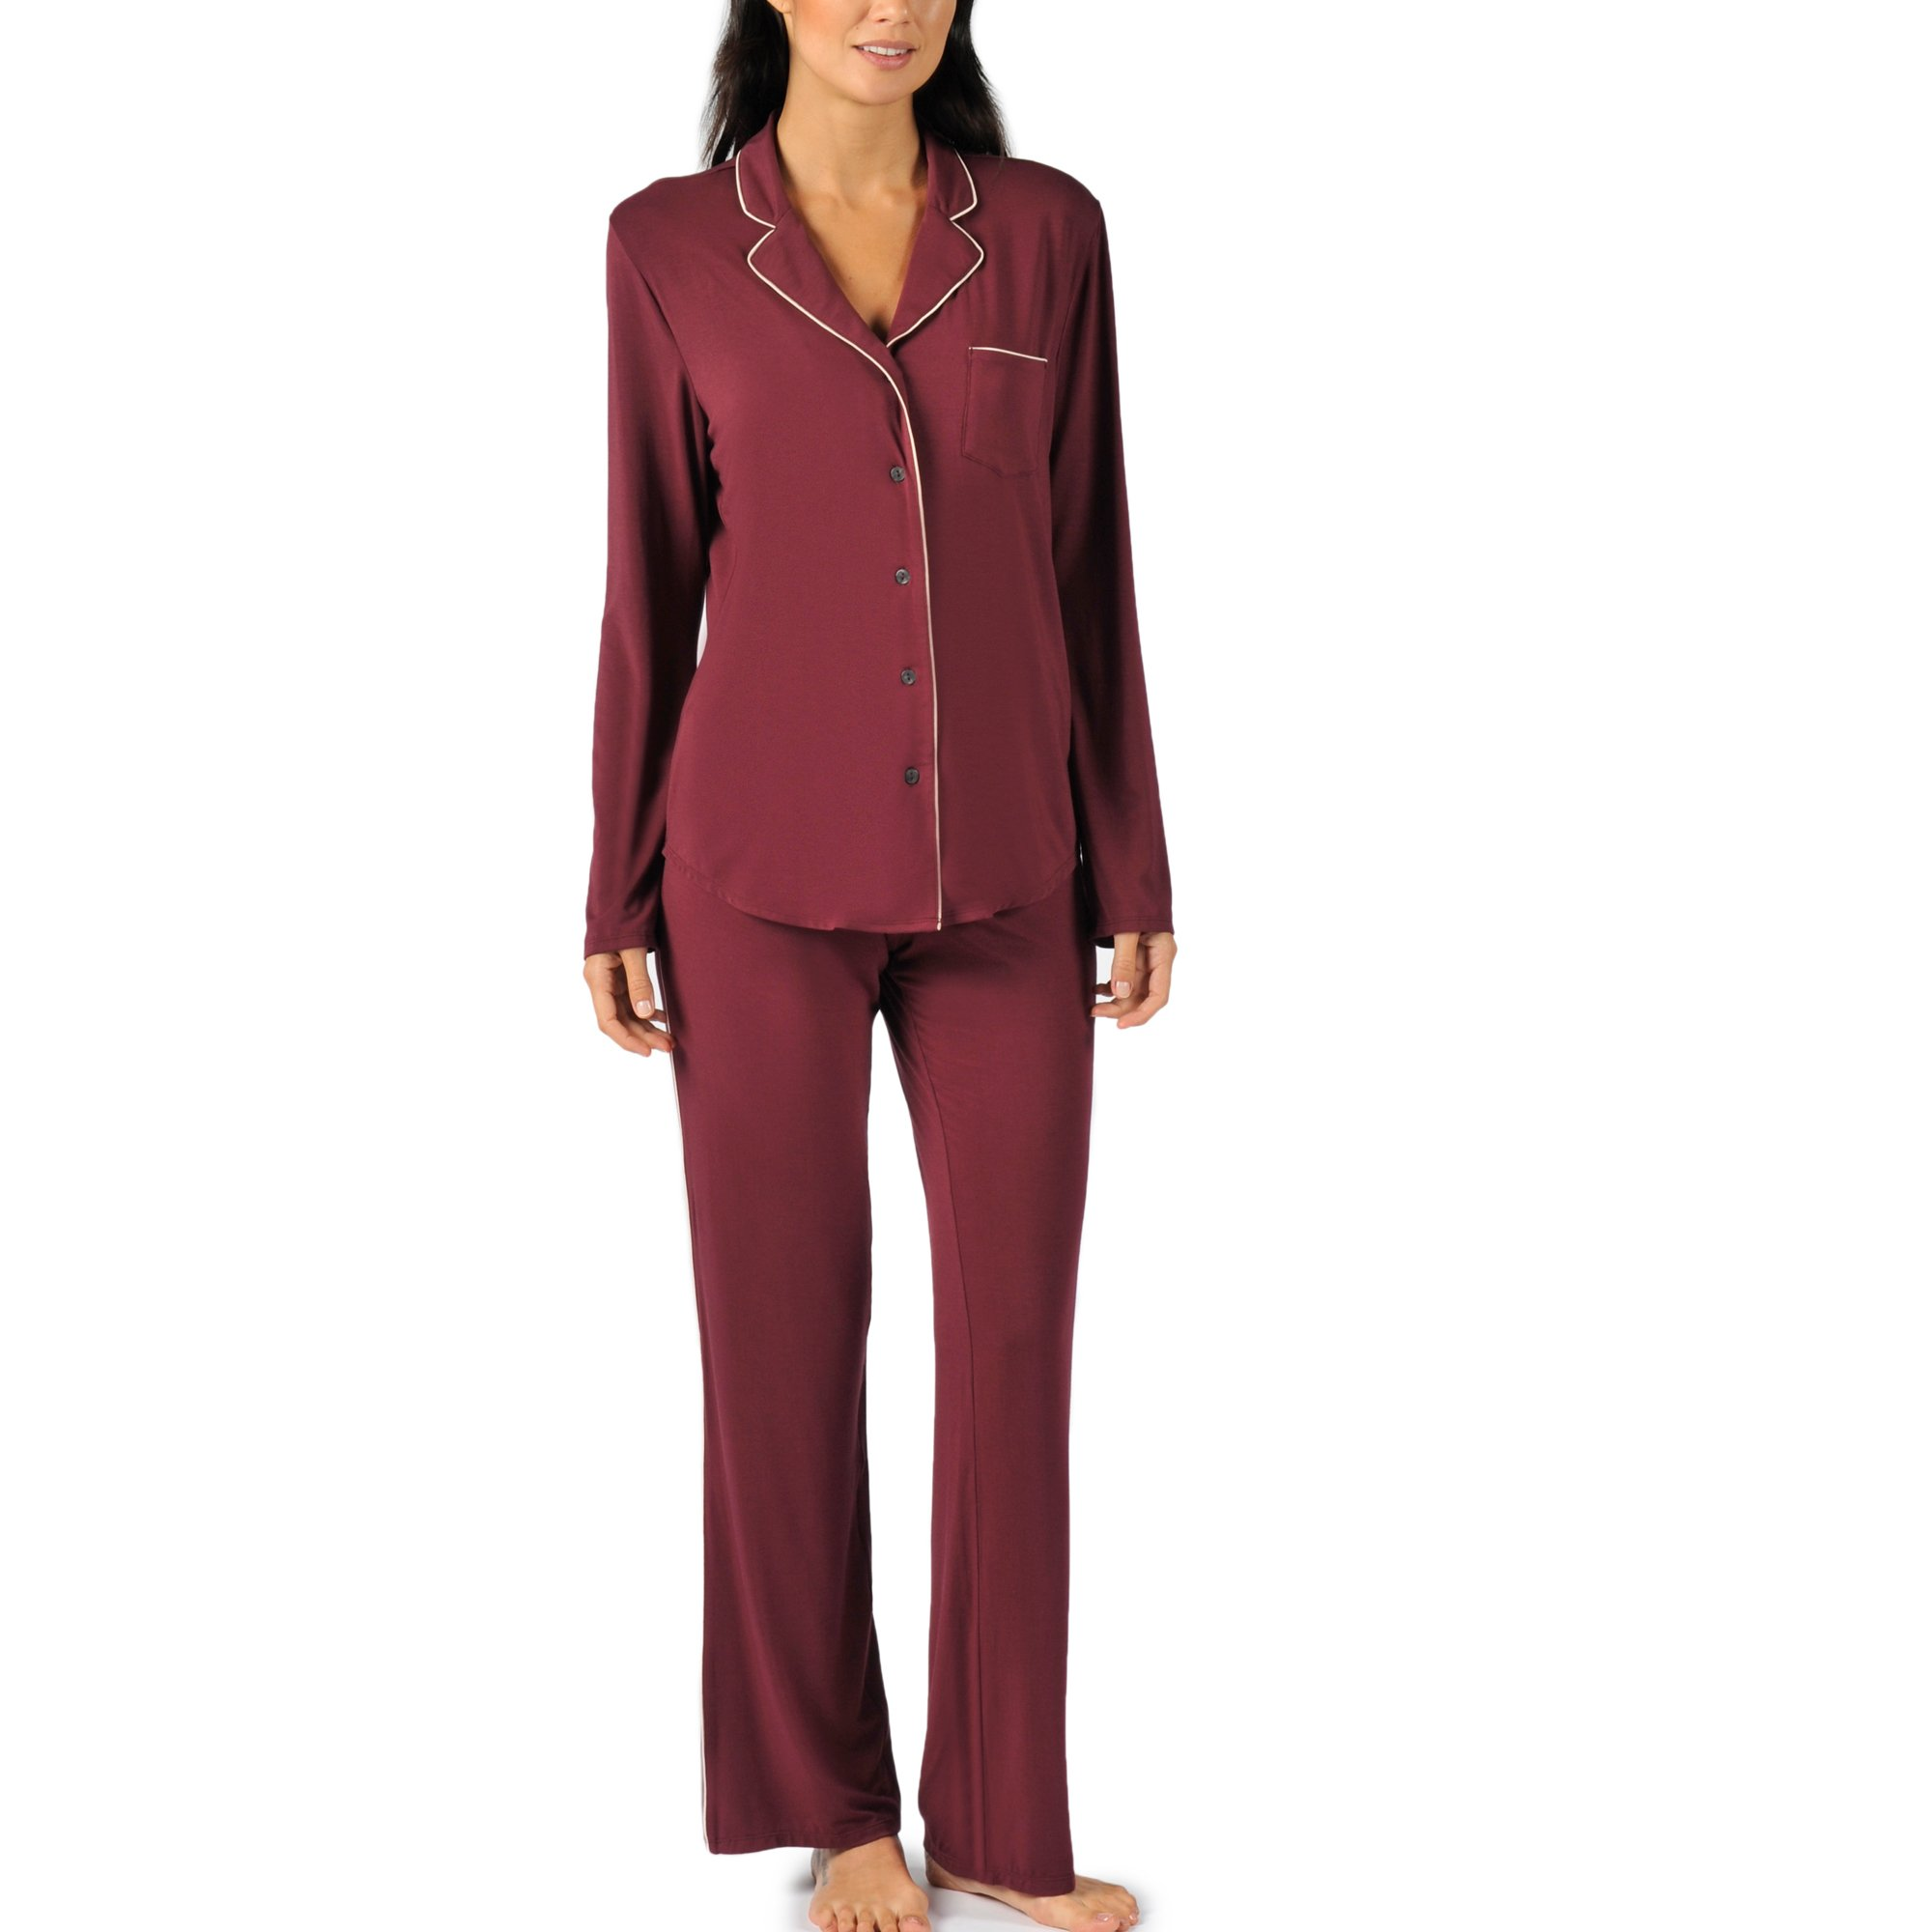 Naked Women's Micromodal Luxury Pajama Set - Sleepwear & Loungewear For Women - Wine Tasting, Large